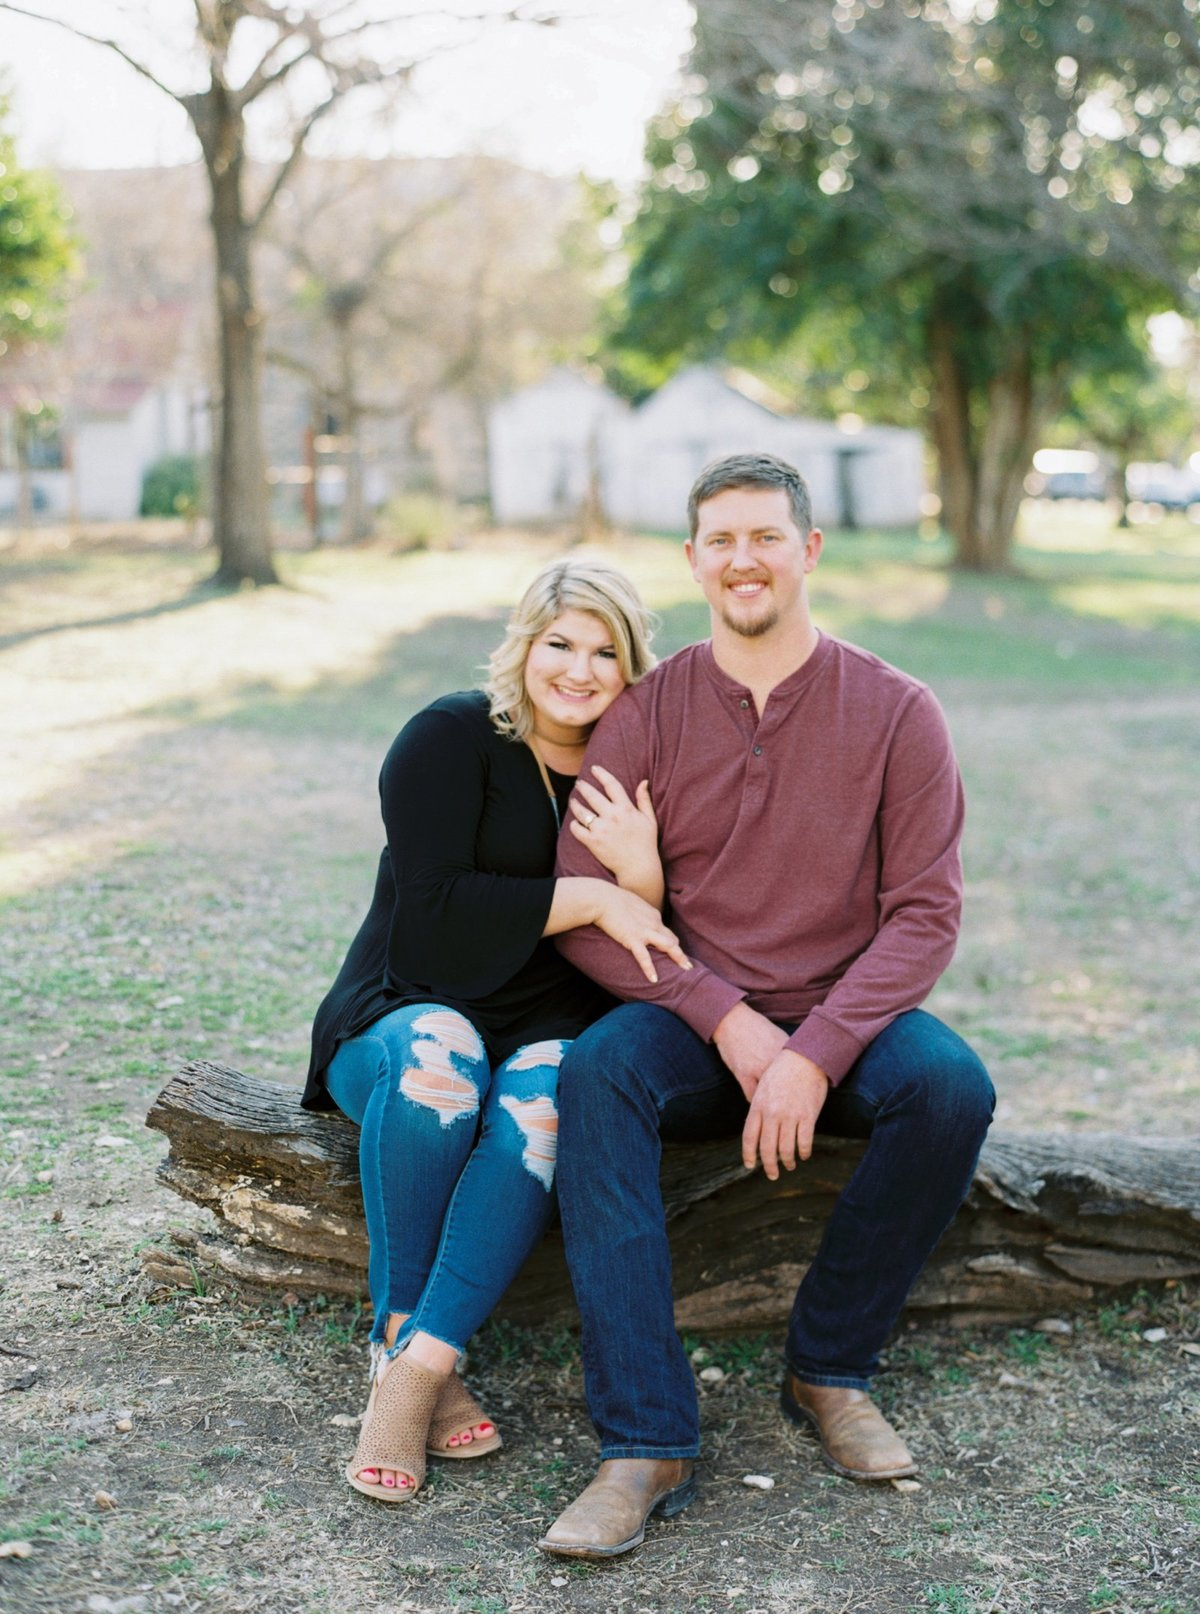 Film Engagement Session in Gruene, Texas. Bride wearing black top and distressed ripped jeans top, groom is wearing a burgundy long sleeve top and jeans.